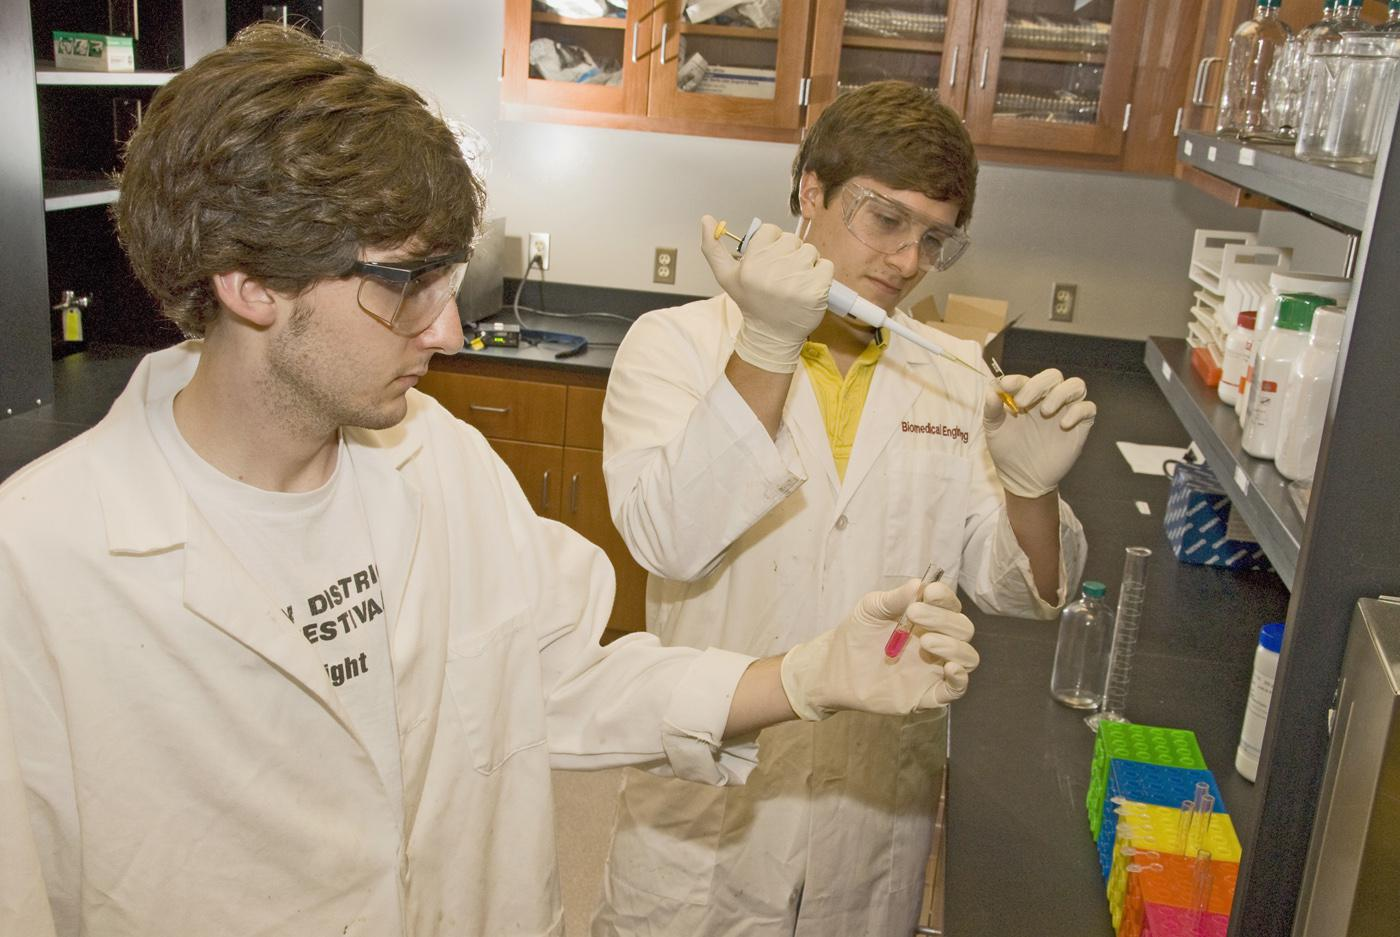 Mississippi State University biological engineering students Sam Pote of Starkville, left, and Caleb Dulaney of Collinsville conduct their research project on isolating an enzyme that initiates lignin breakdown in plant cells. (Photo by Marco Nicovich)